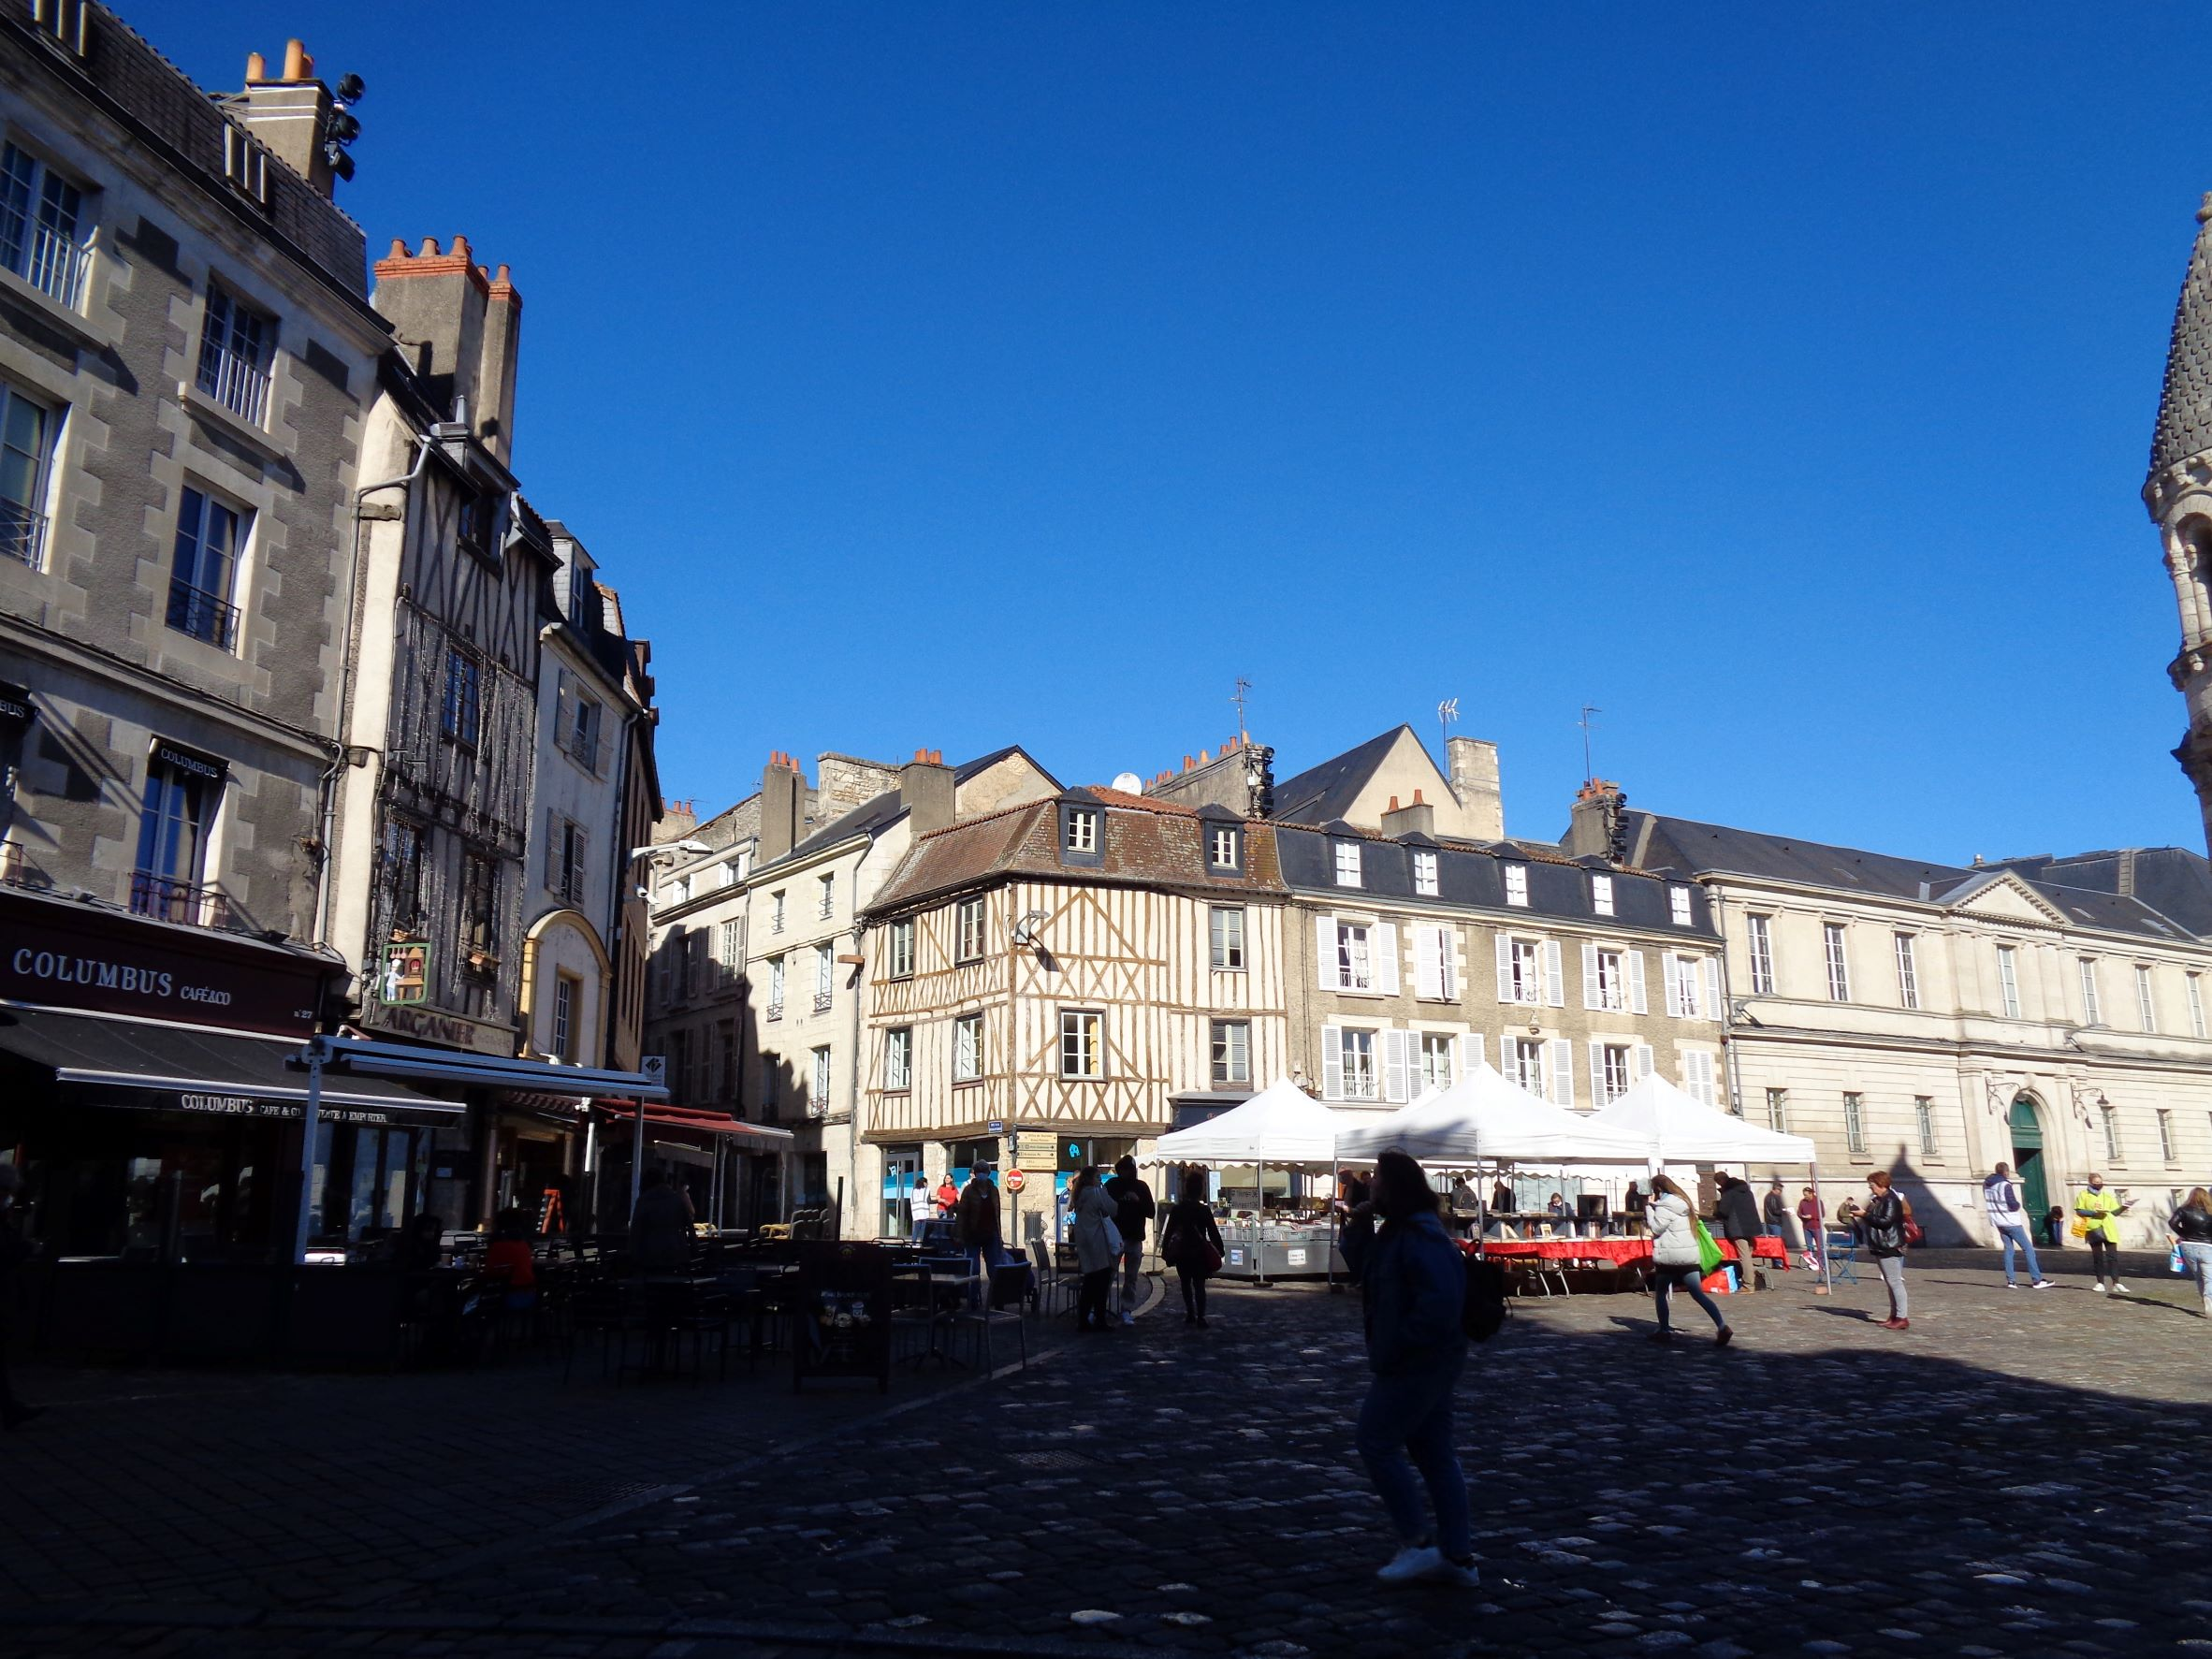 Poitiers pl Charles de Gaulle by ND grande ch oct21